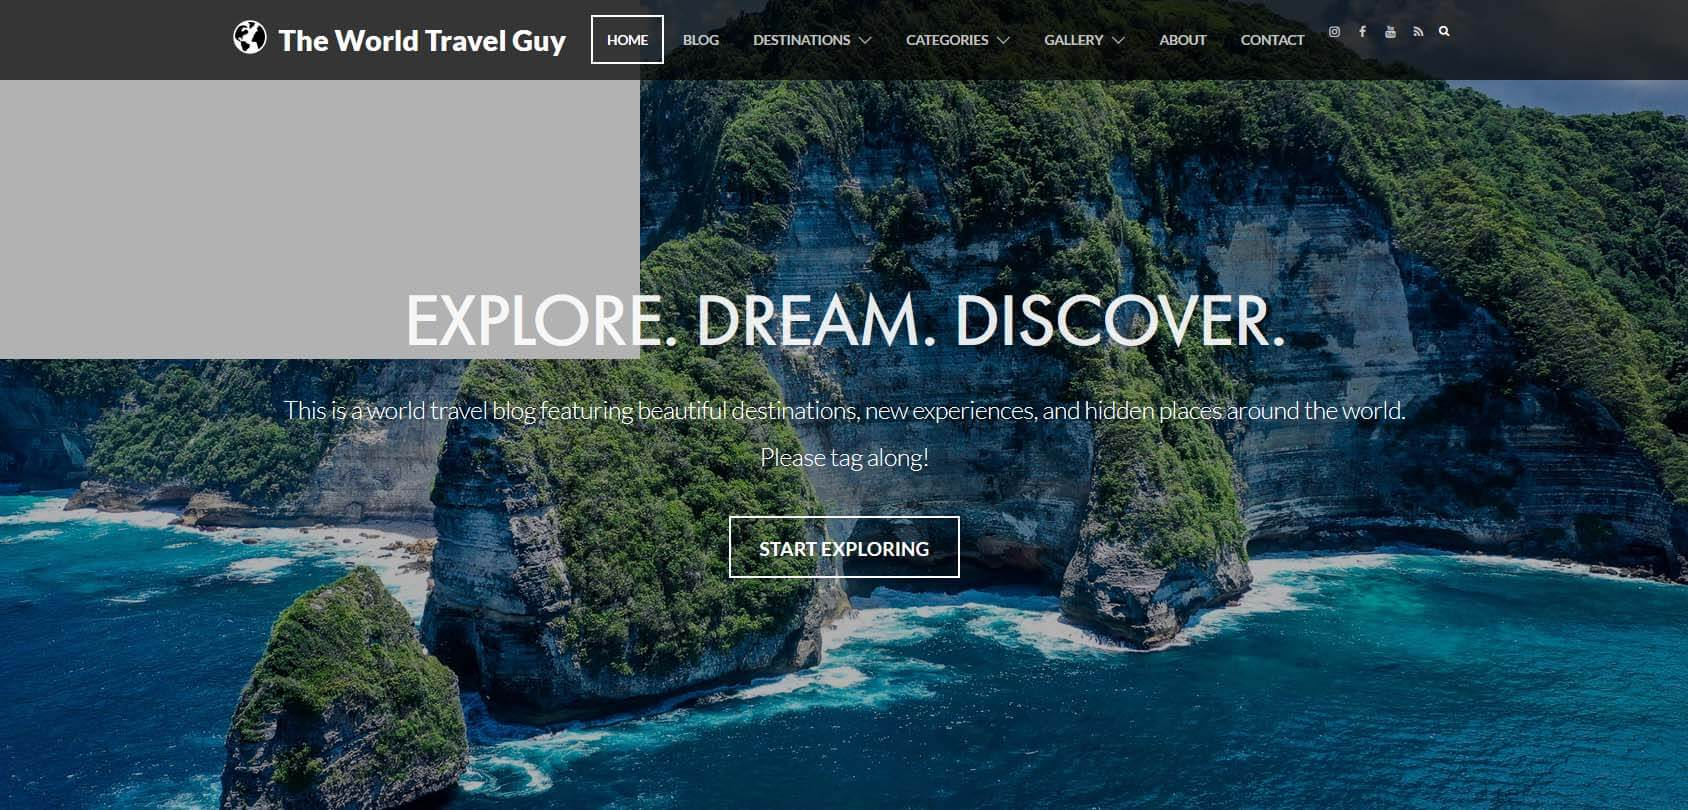 The World Travel Guide Homepage